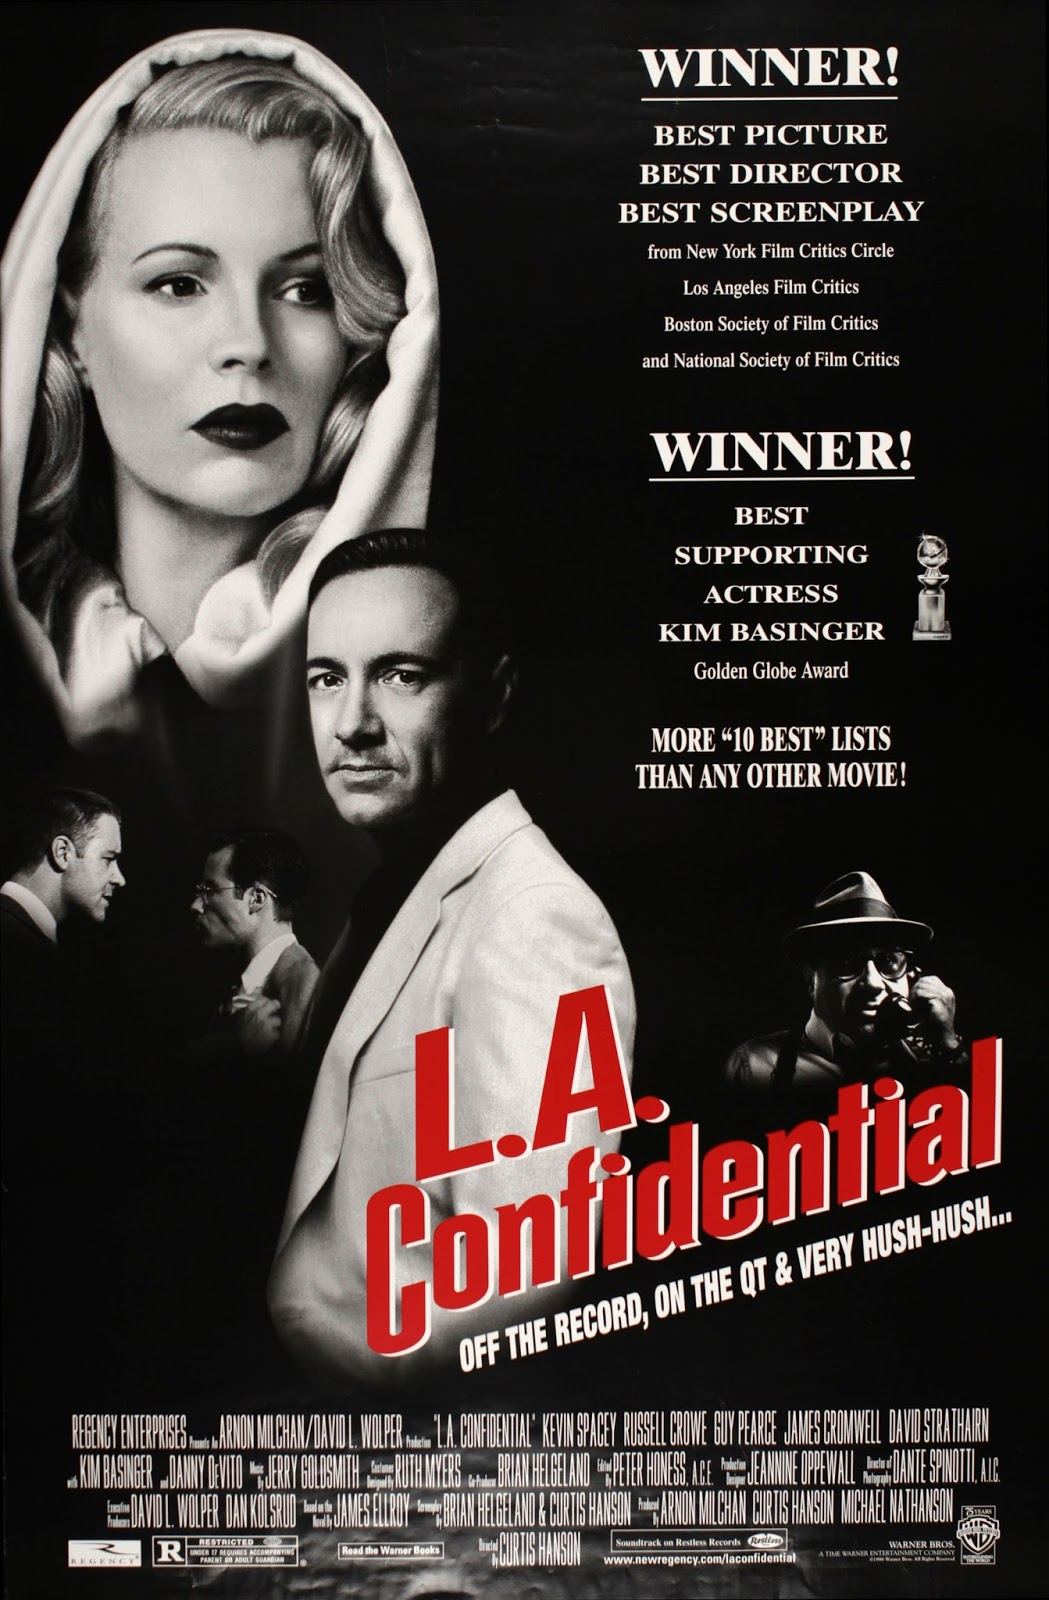 a review of the movie la confidential directed by curtis hanson La confidential 1997 movie hd free download download la confidential full movie 720p high quality, this movie is listed in our software for download with subtitles.